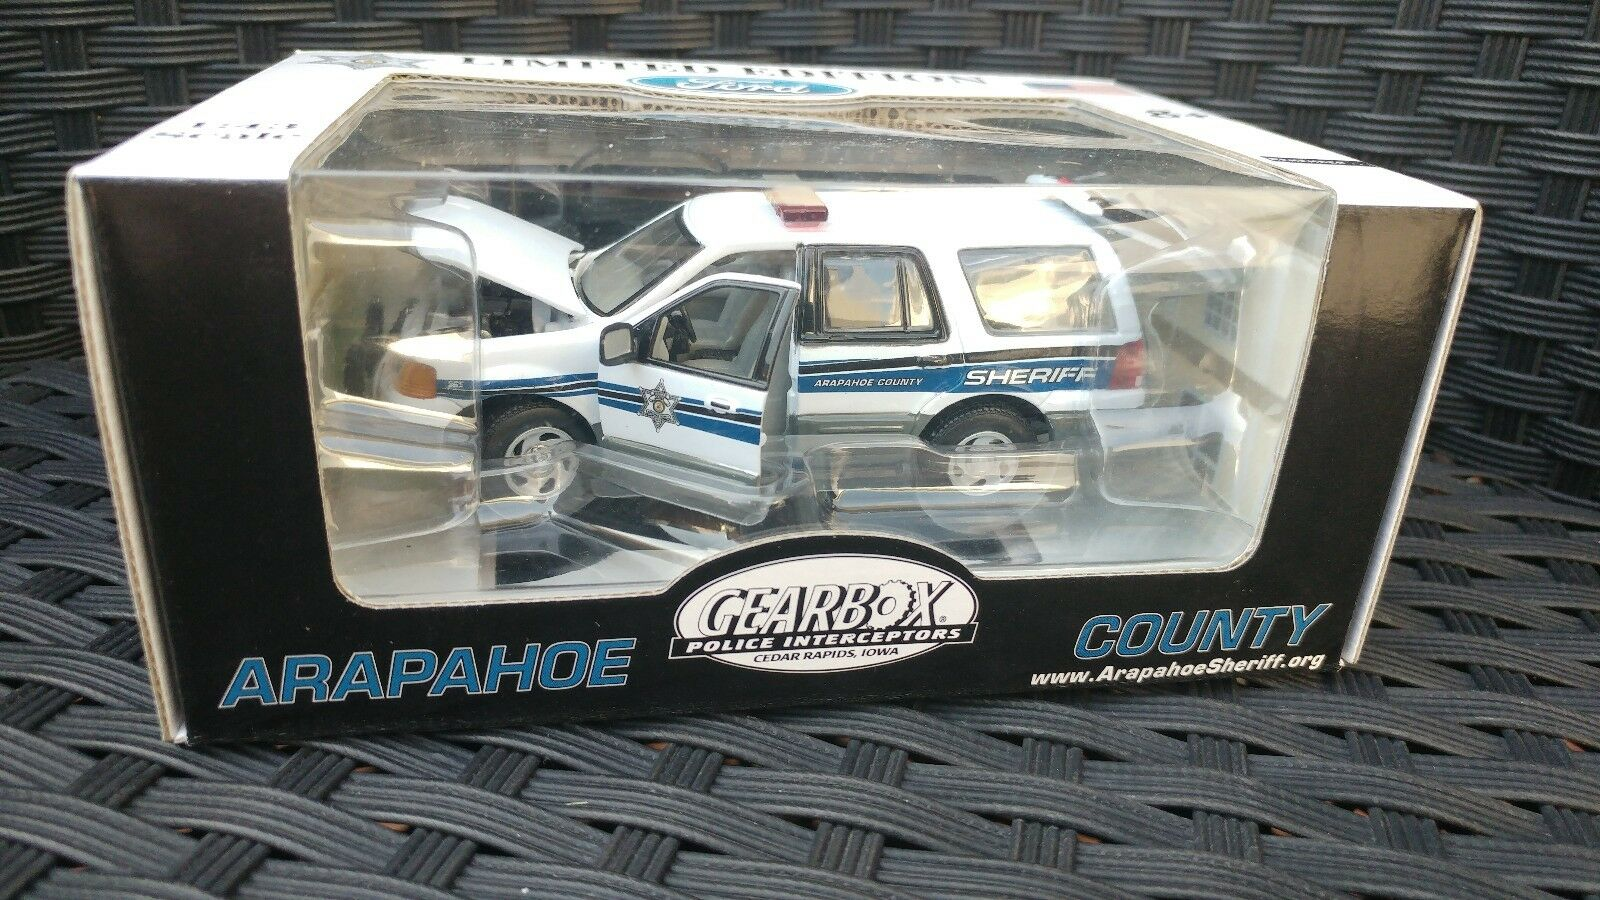 ARAPAHOE COUNTY, CO SHERIFF-2005 FORD EXPEDITION GEARBOX 1 43 SAMPLE CAR LTD.ED